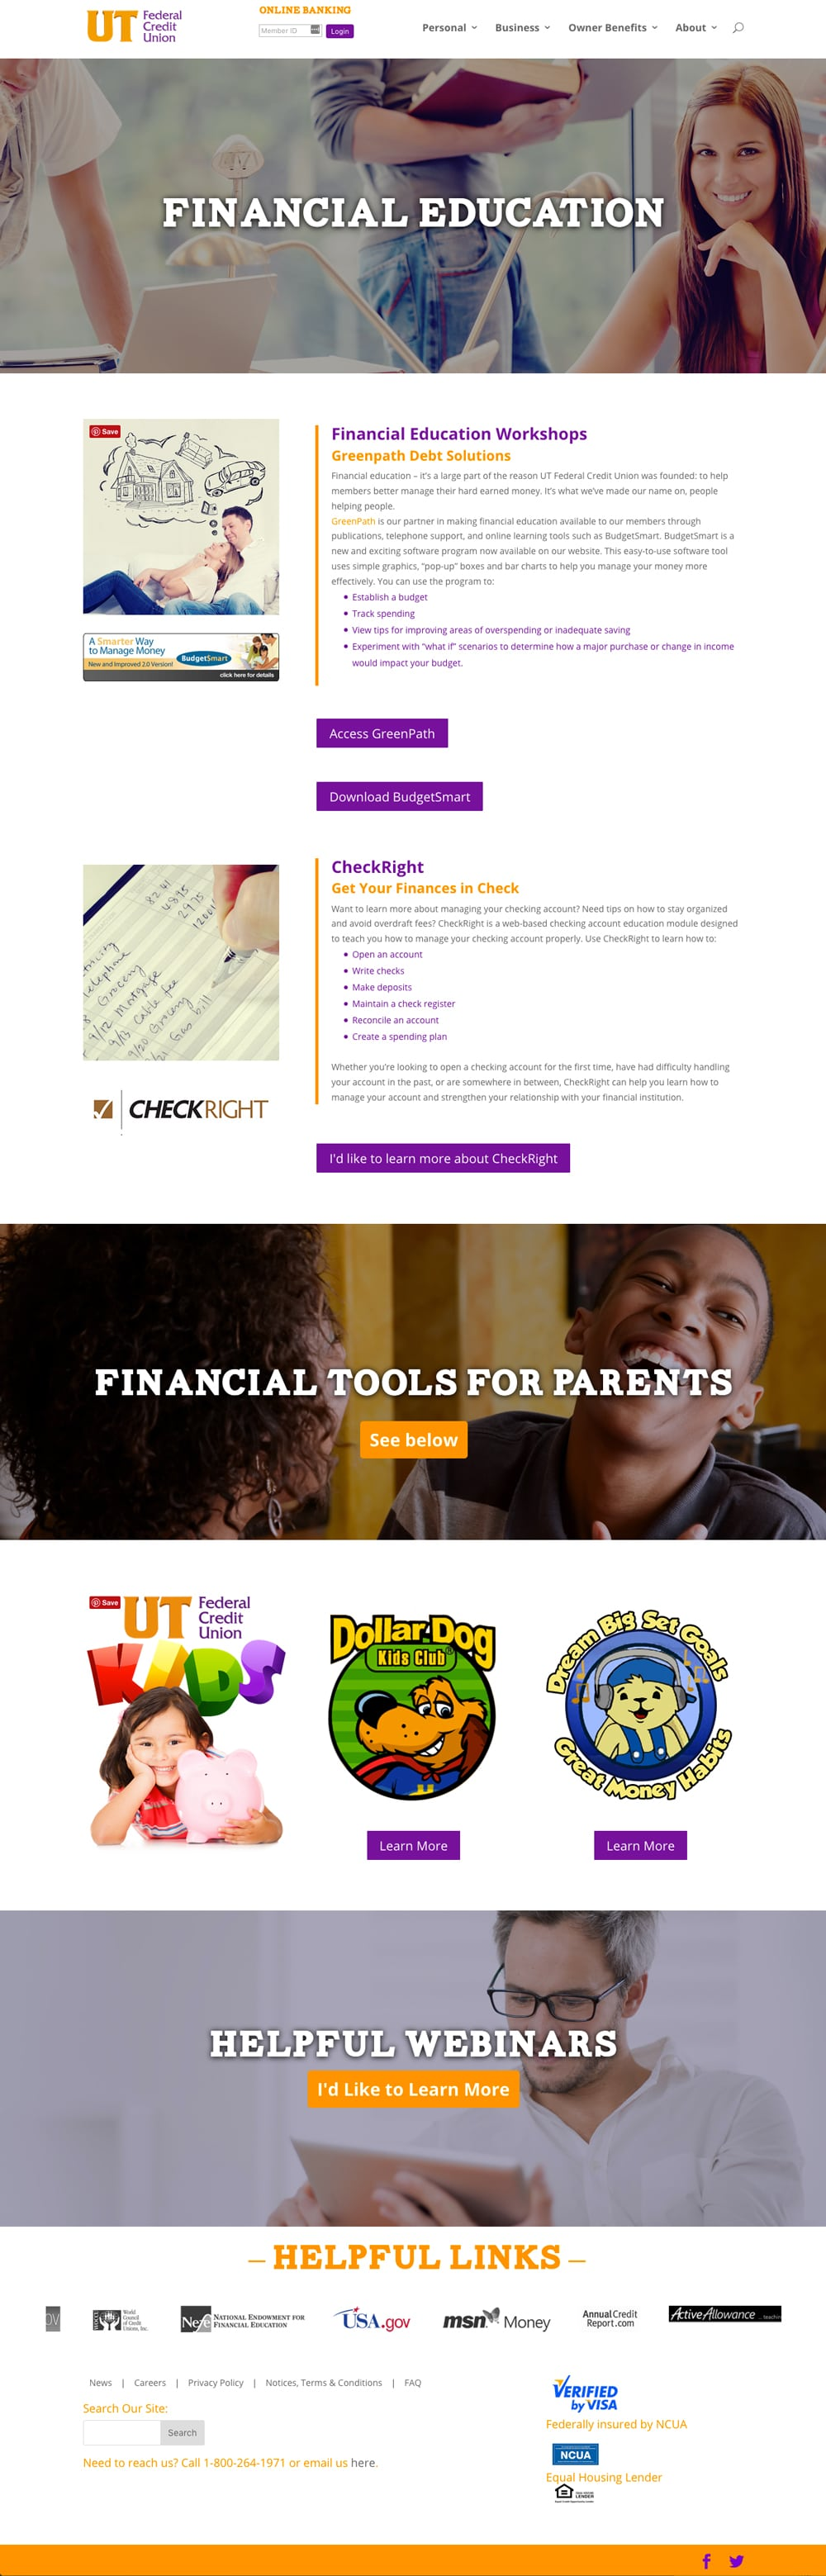 UT Federal Credit Union Financial Education Page